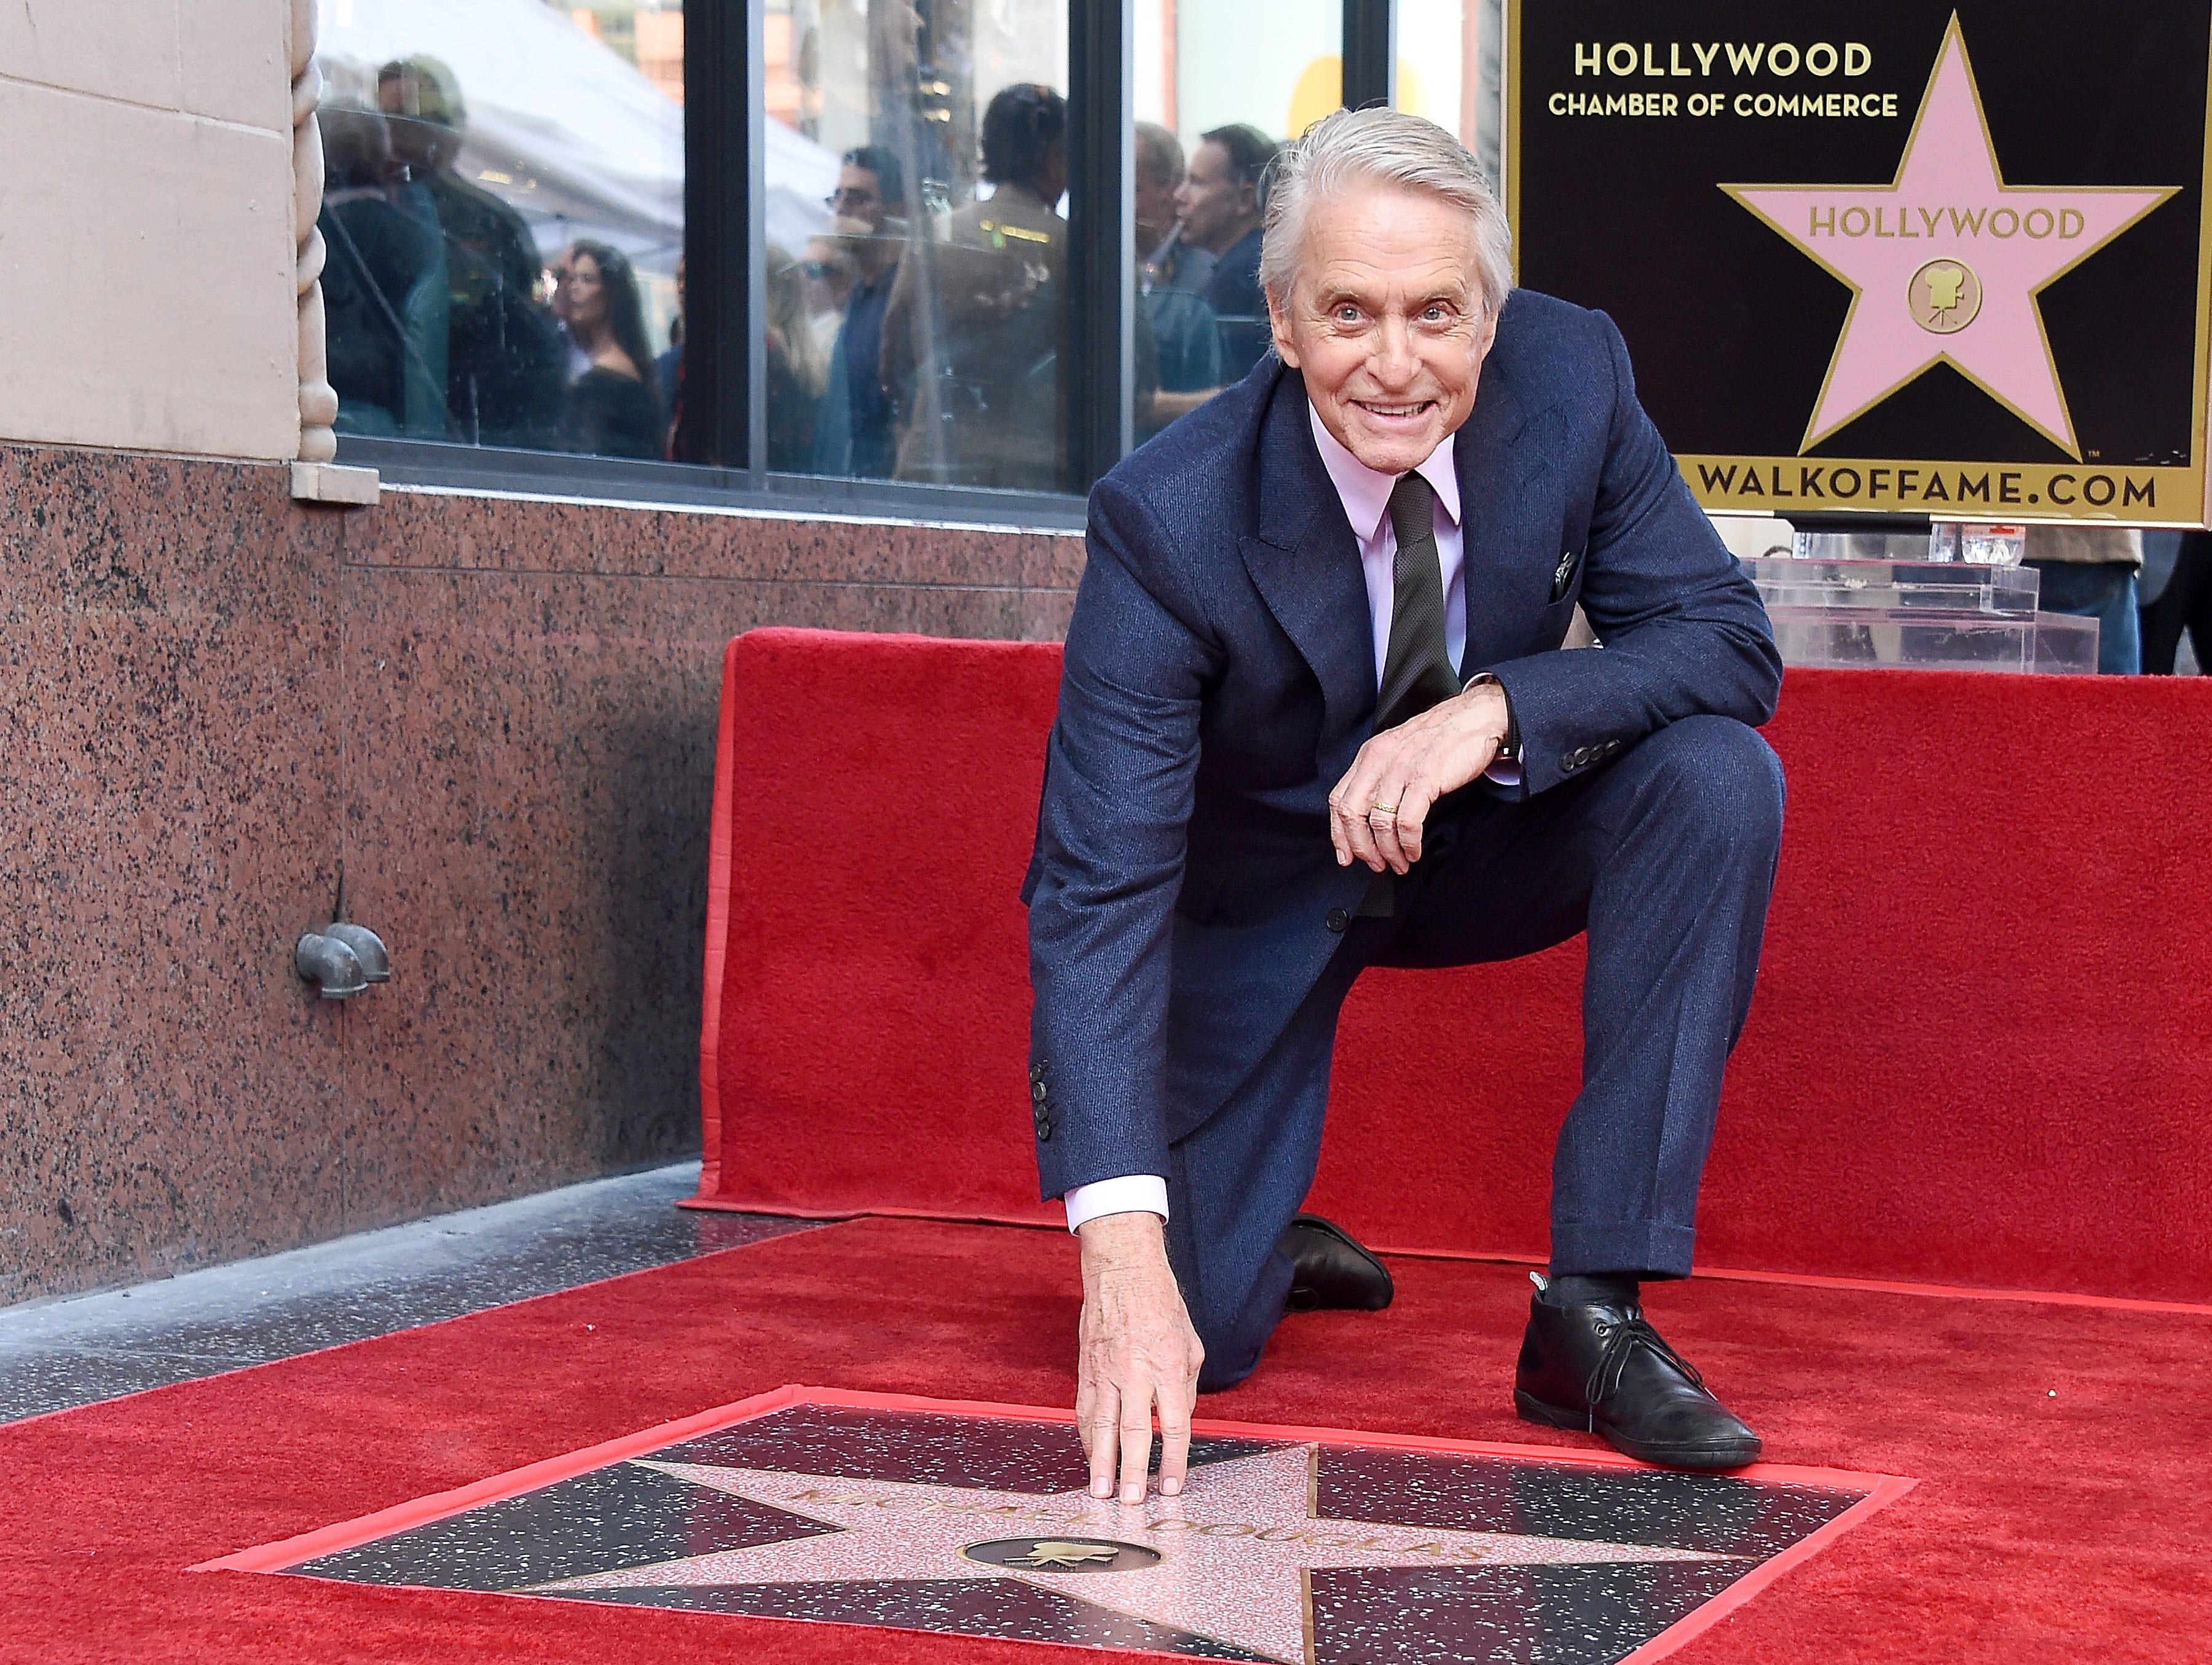 HOLLYWOOD, CA - NOVEMBER 06:  Michael Douglas Honored With a Star On The Hollywood Walk Of Fame on November 6, 2018 in Hollywood, California.  (Photo by Gregg DeGuire/Getty Images) ORG XMIT: 775248764 ORIG FILE ID: 1058286286